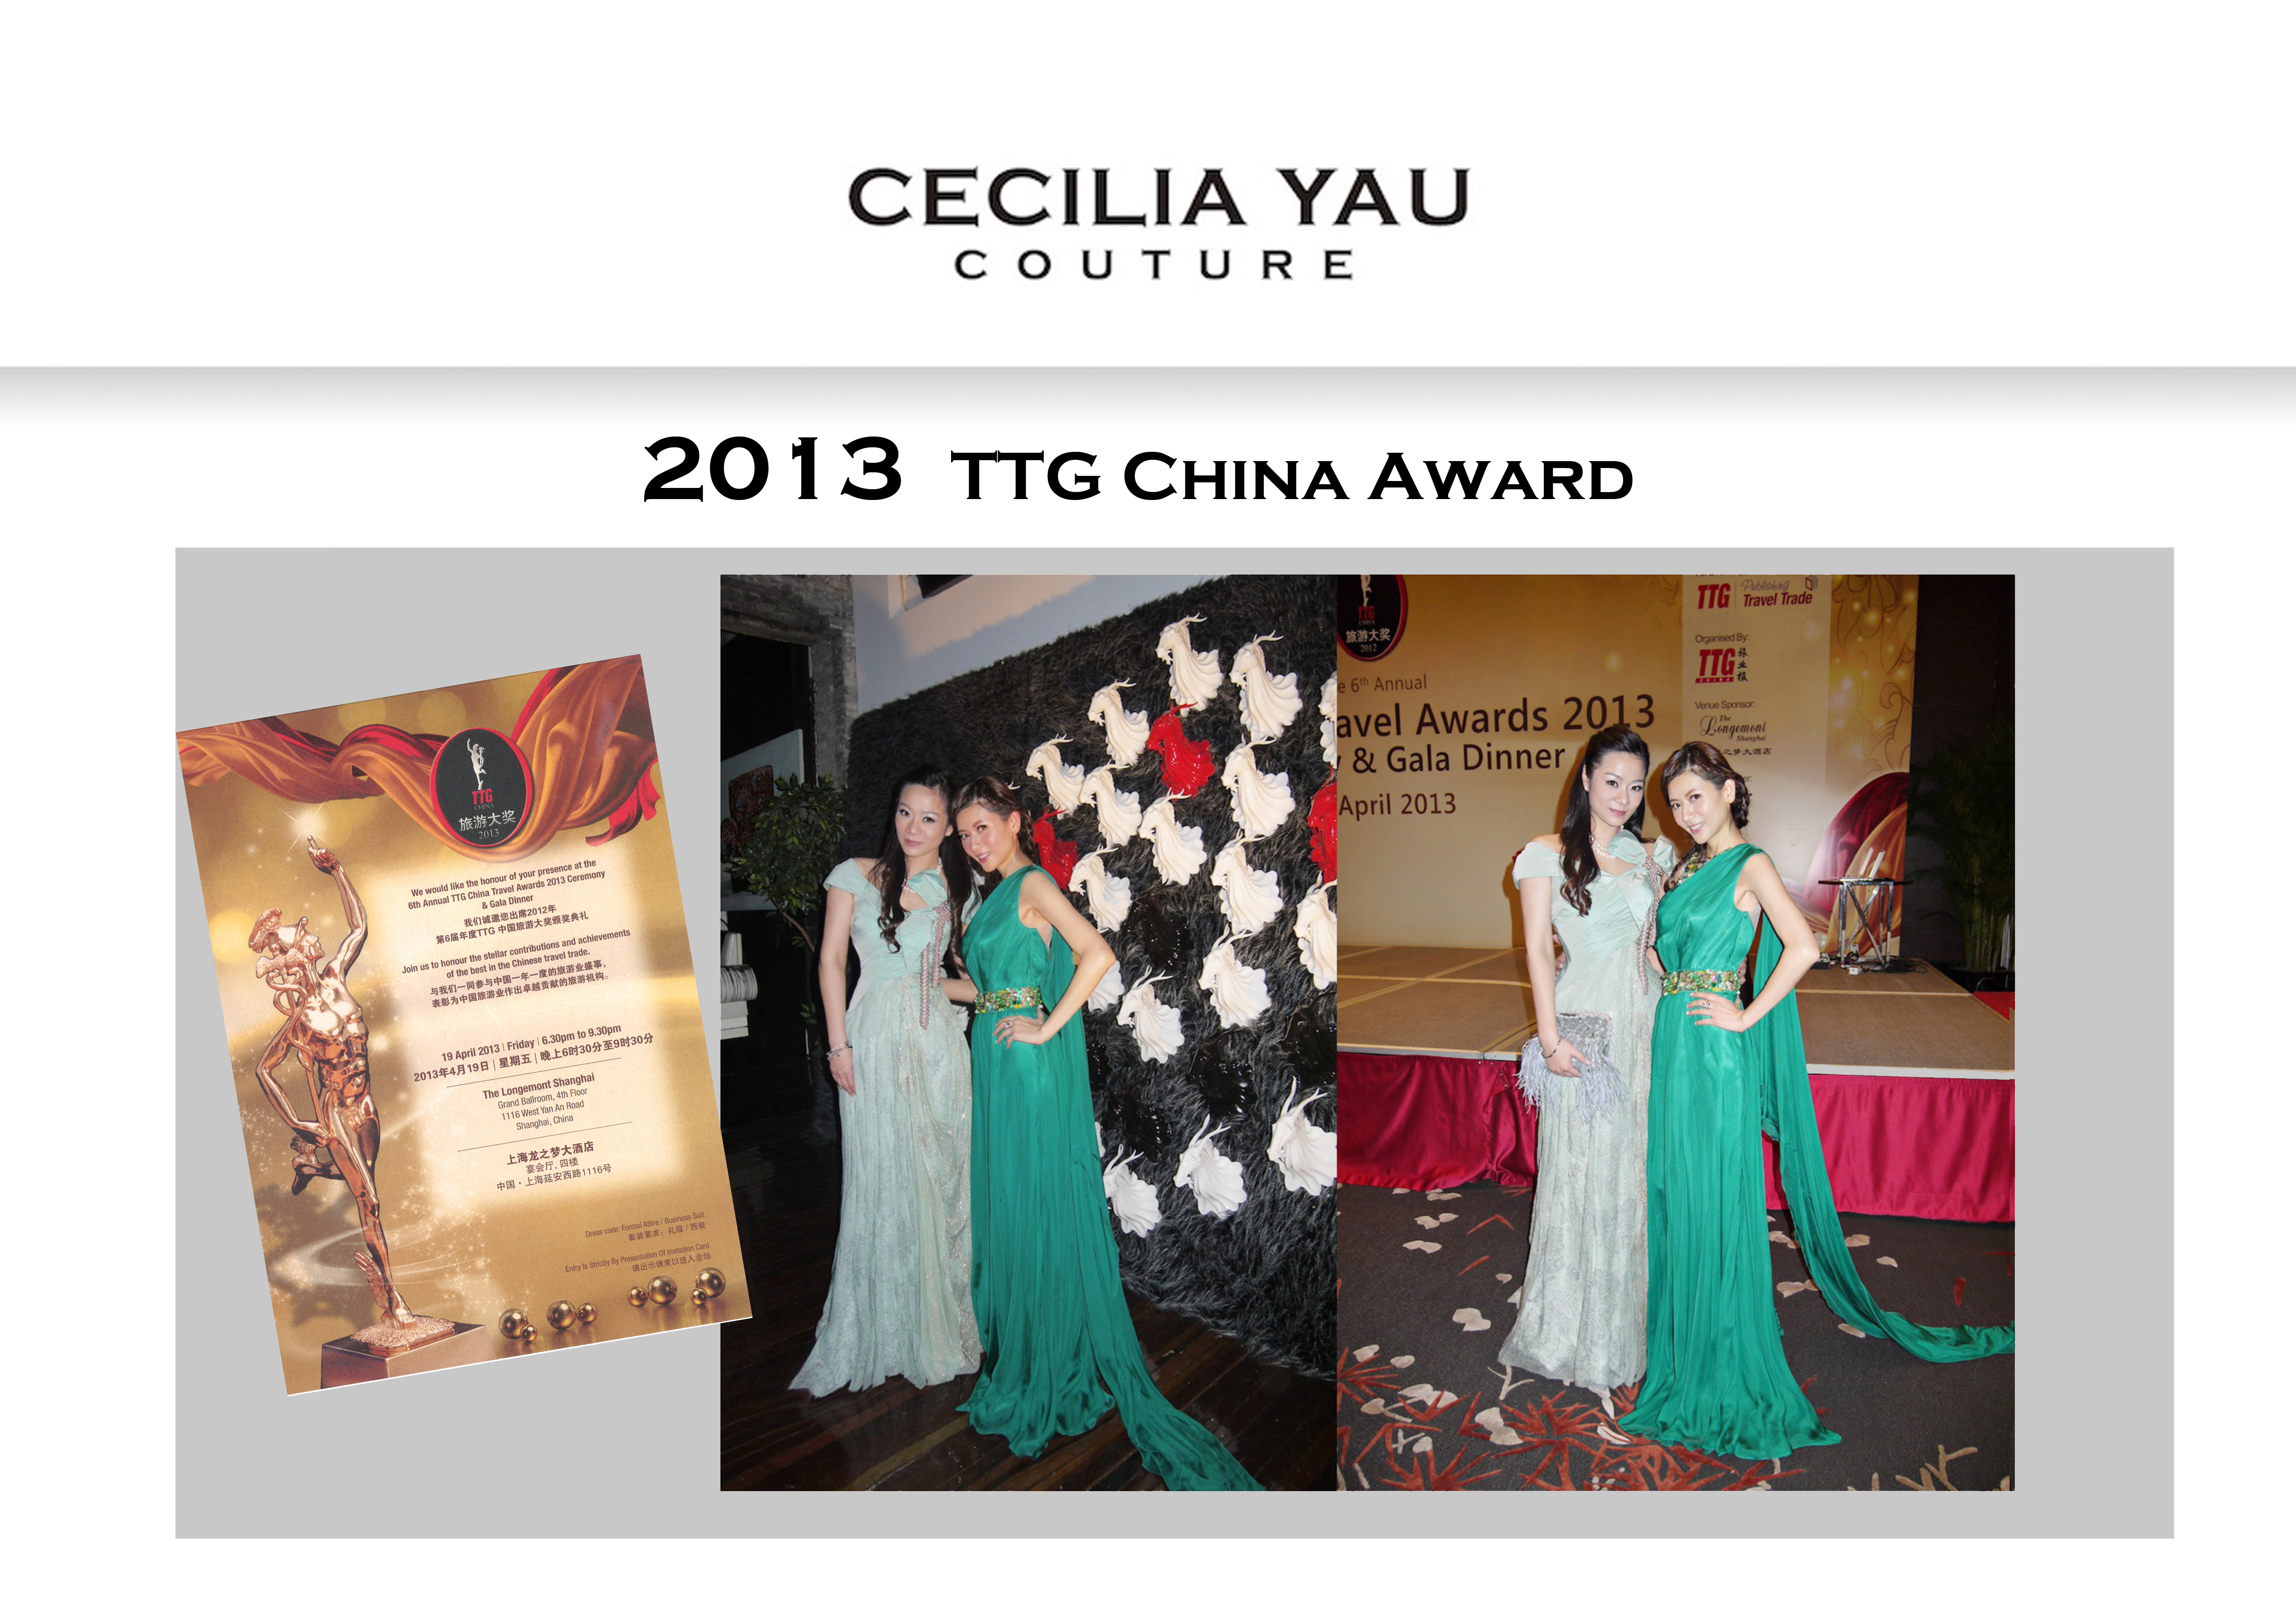 2013 TTG China Award